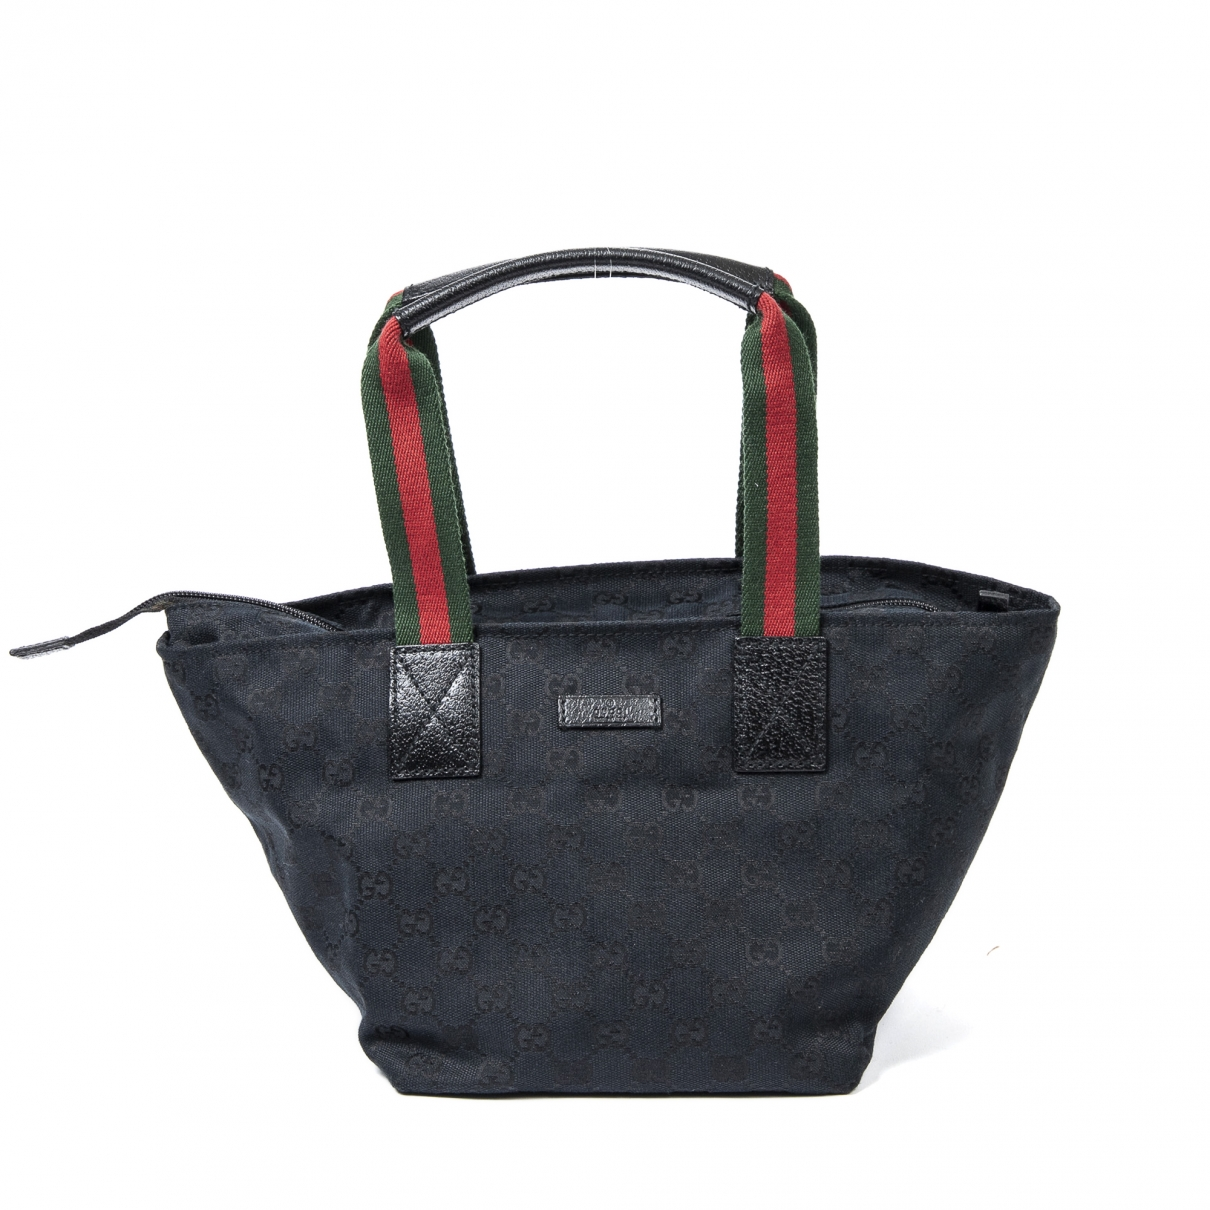 Gucci \N Black Cotton handbag for Women \N